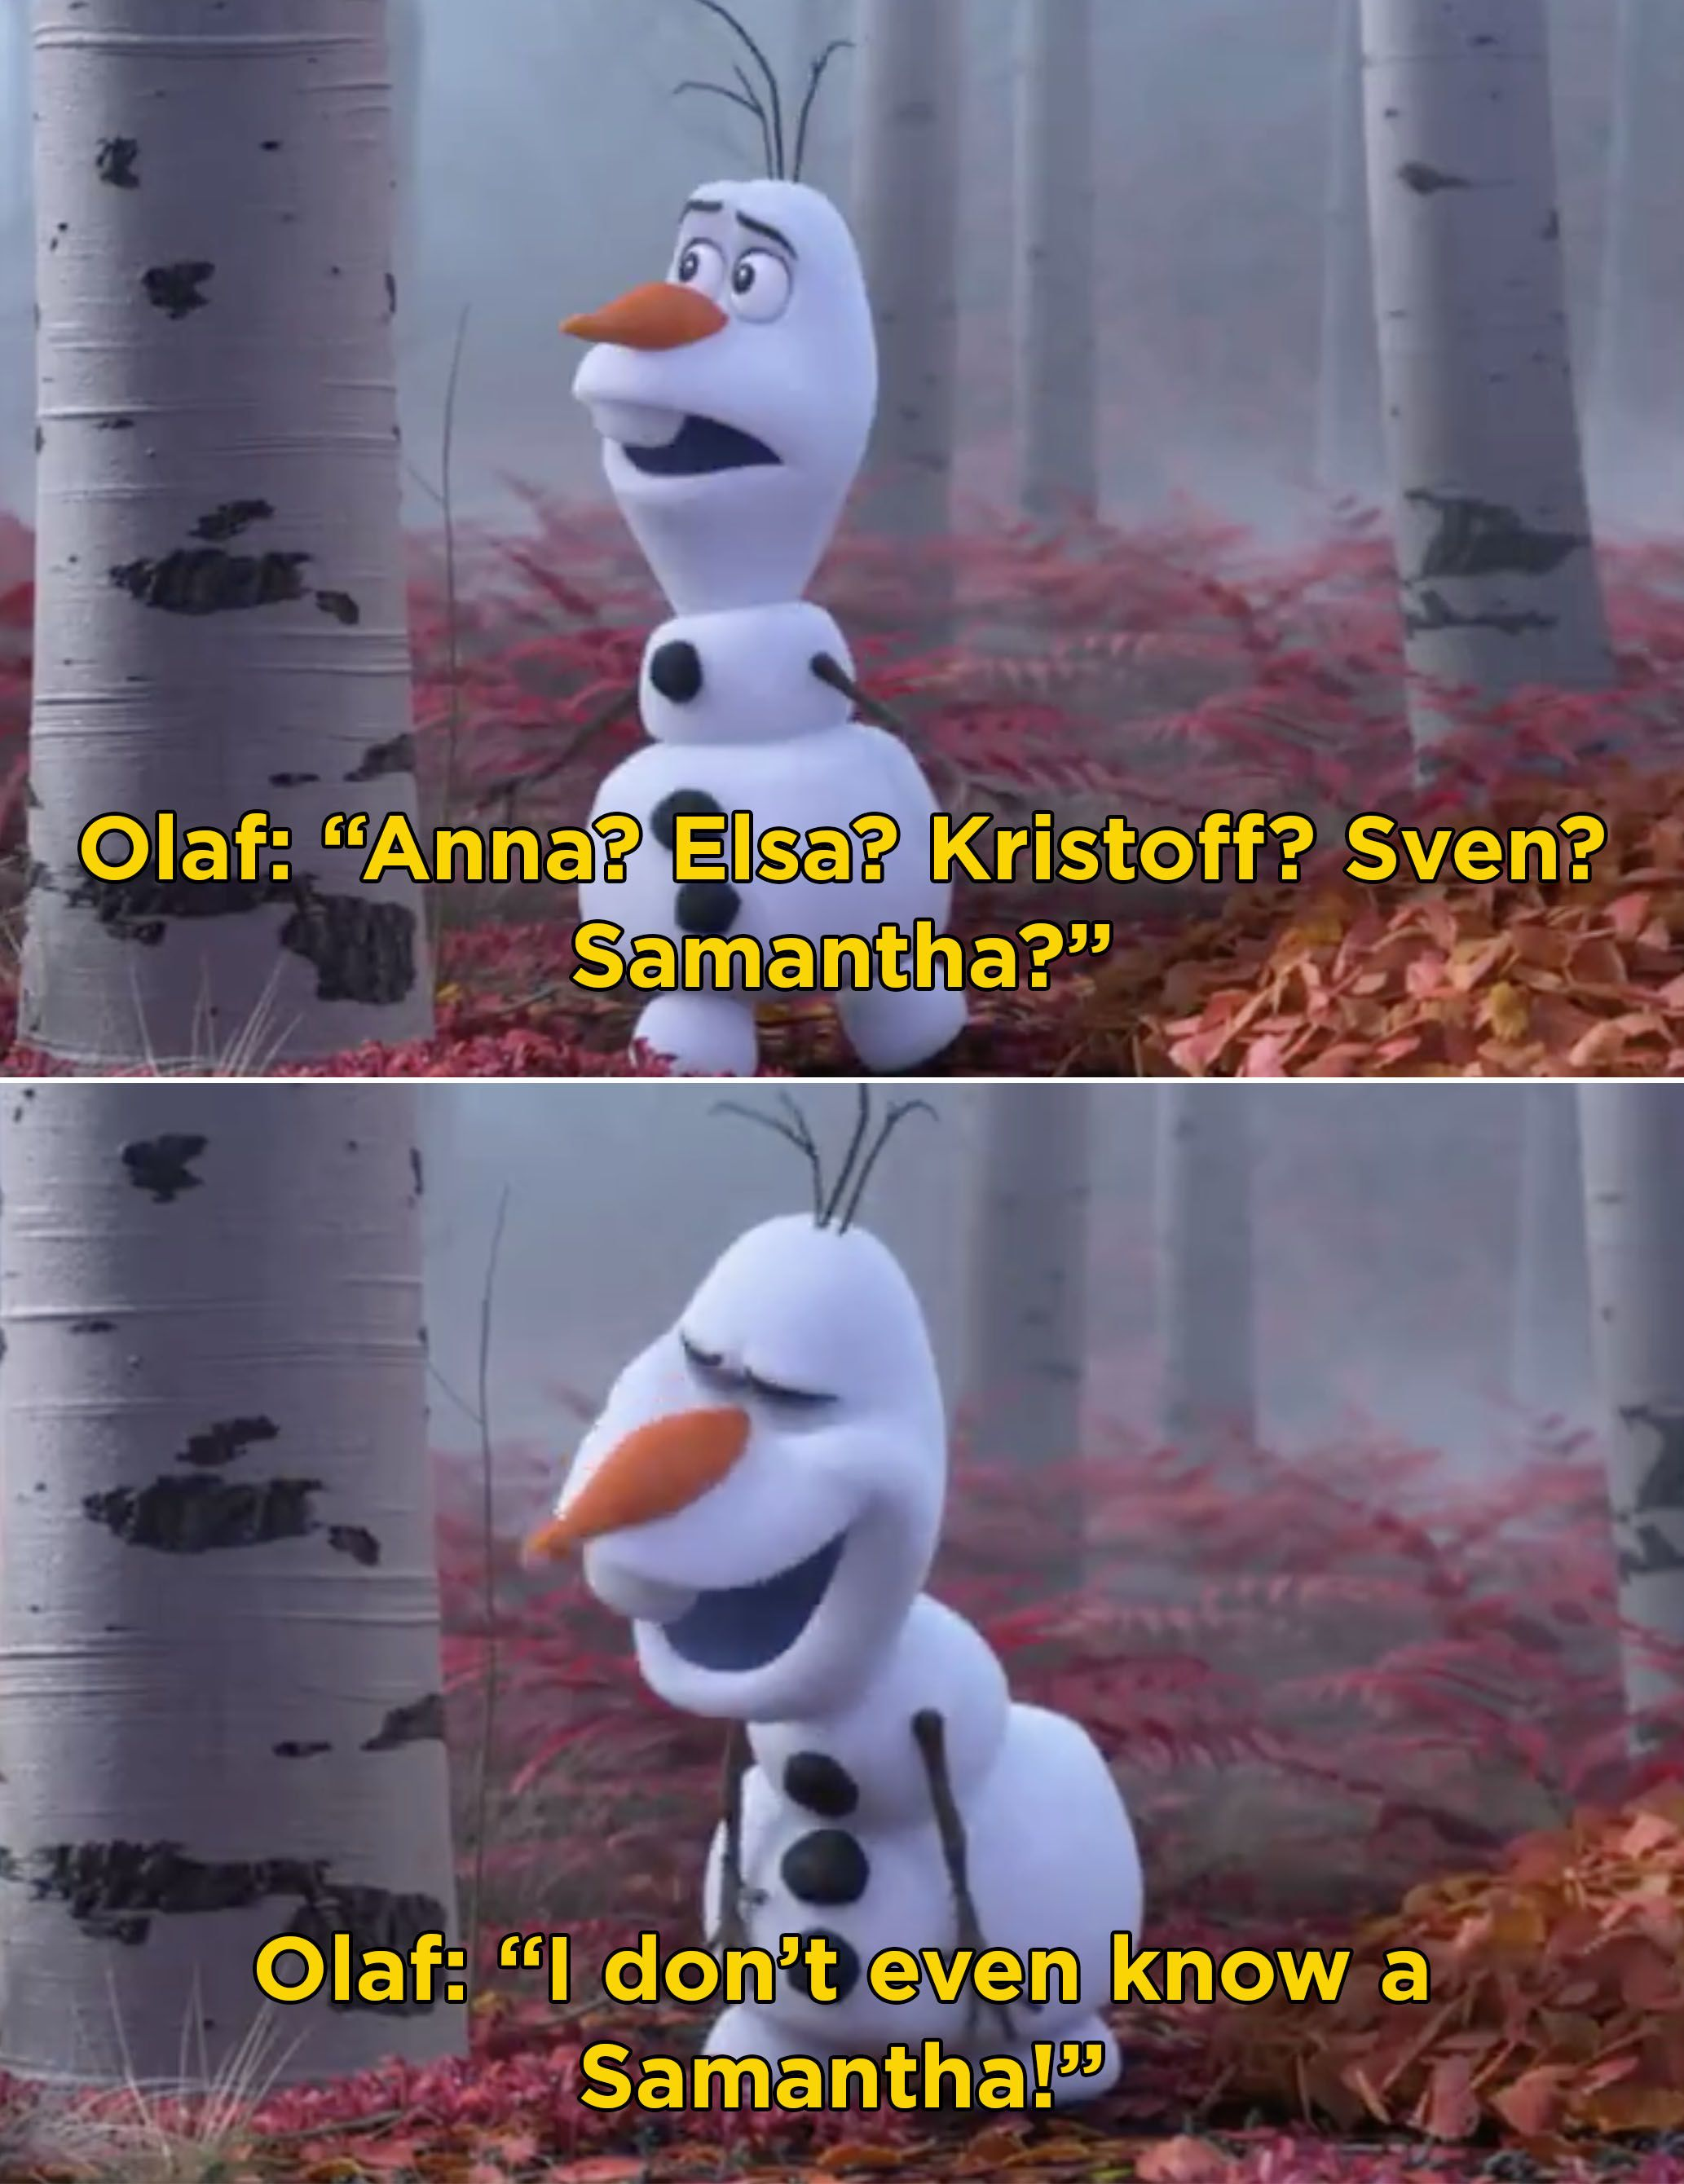 22 Frozen 2 Behind The Scenes Facts You Probably Didn T Know